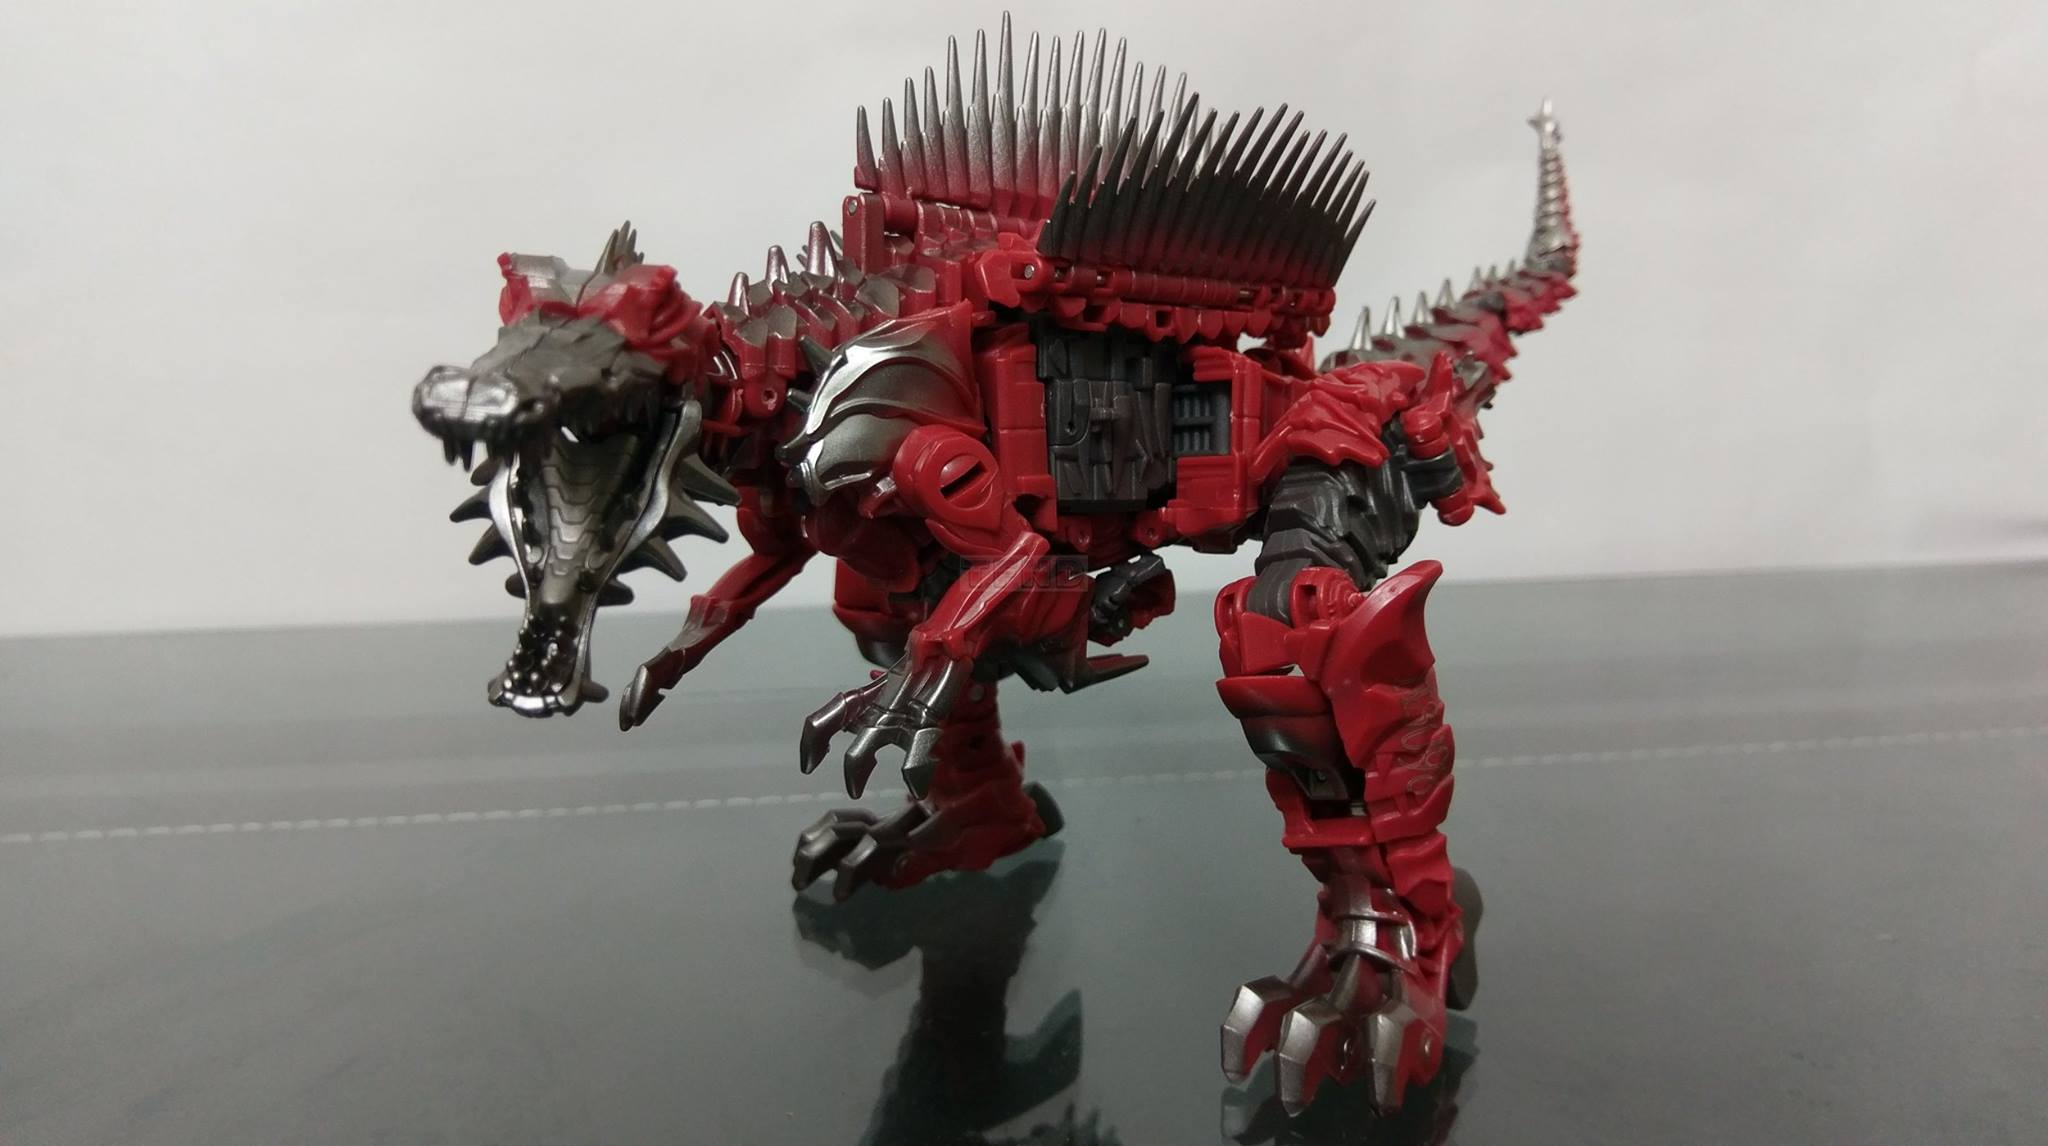 Transformers: The Last Knight Voyager Class Scorn In-Hand Images - Transformers News - TFW2005